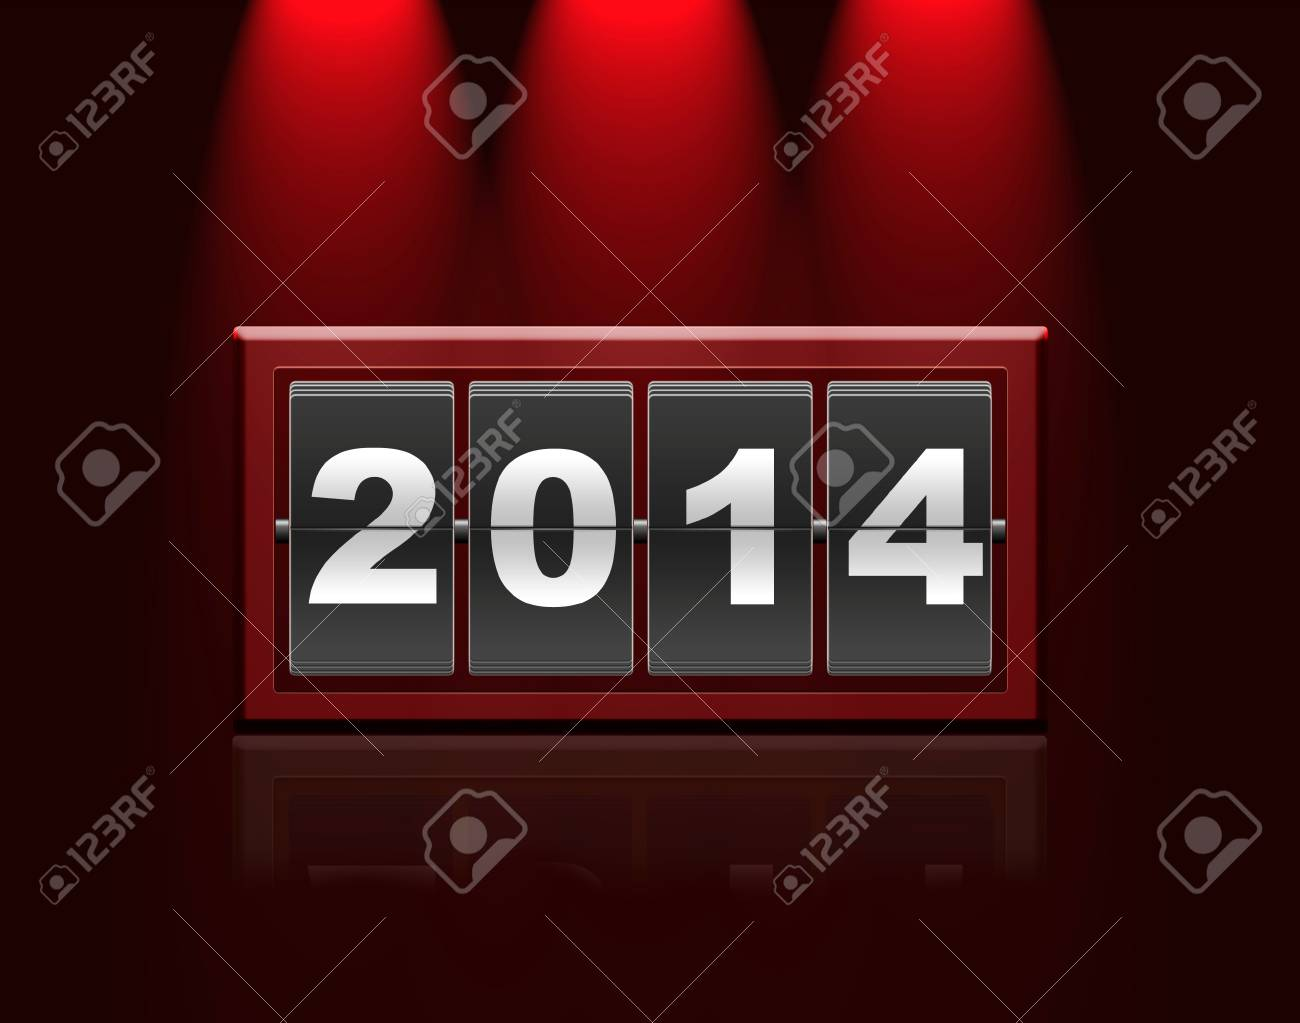 Illustration with a metal counter calendar 2014 Stock Photo - 22252530